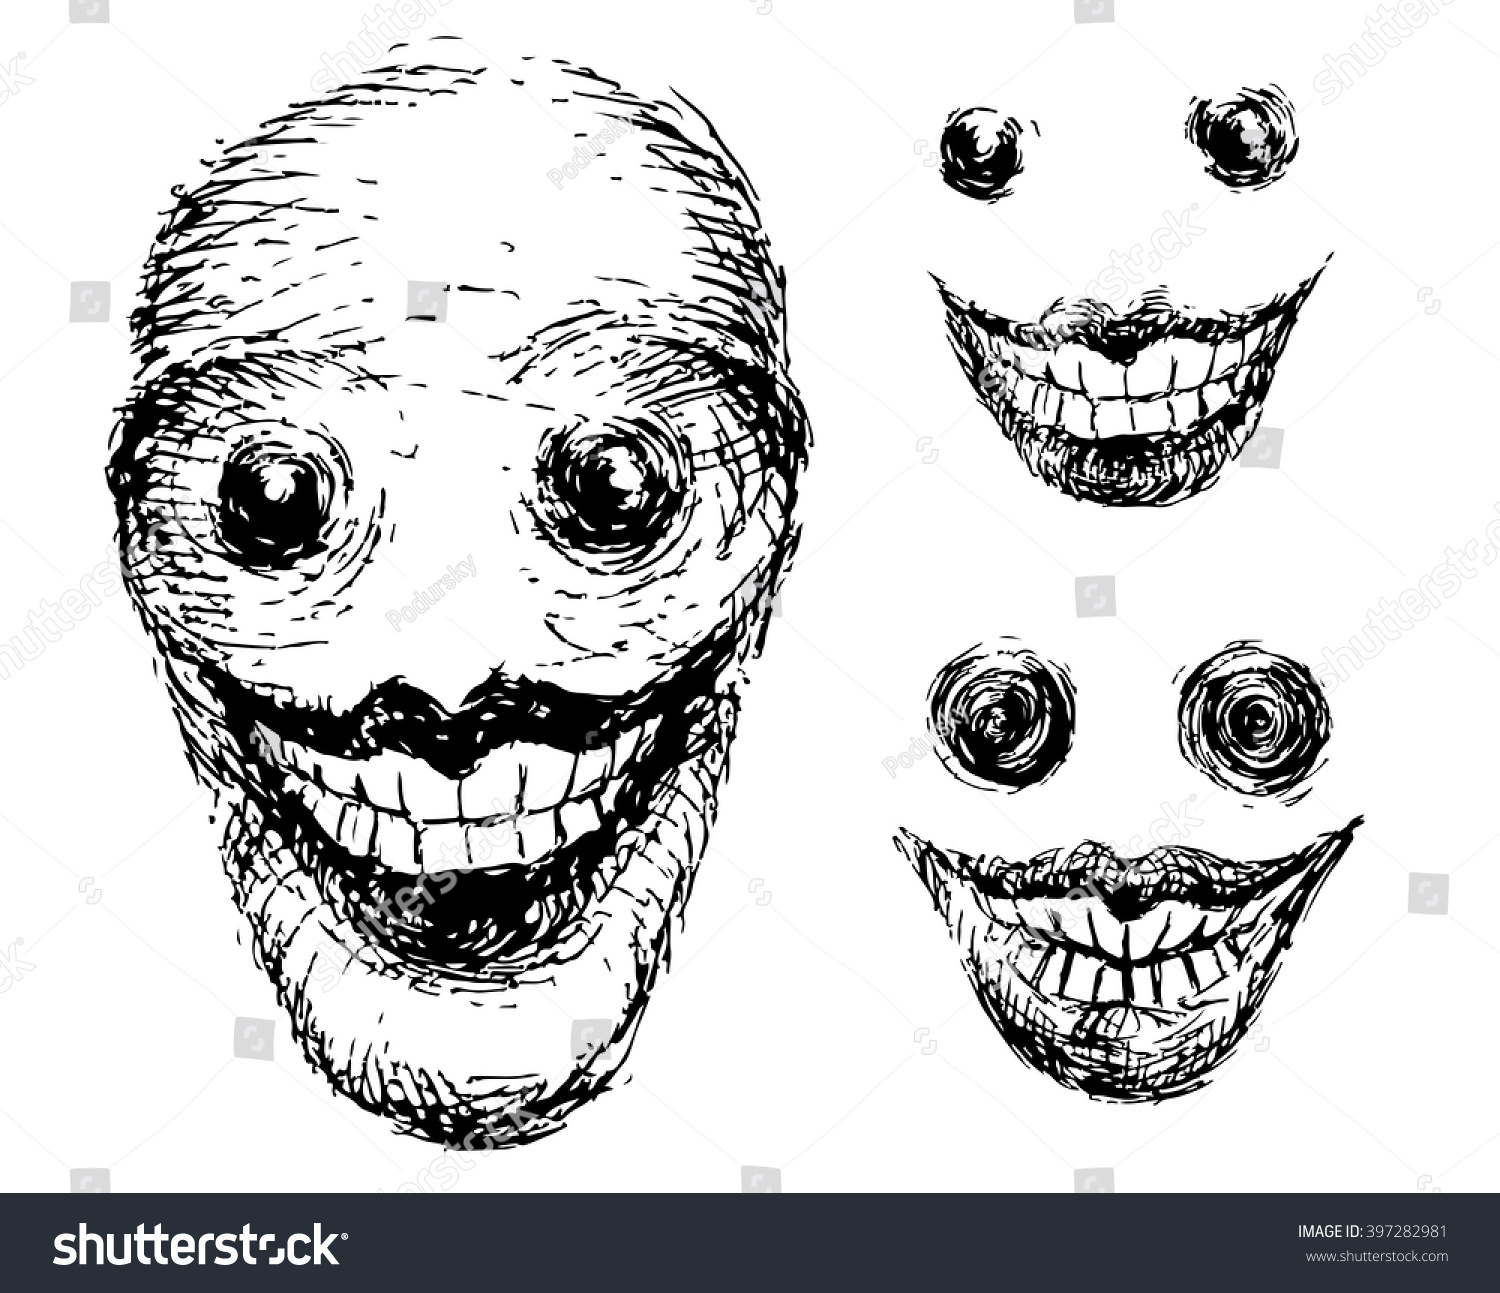 Crazy Scary Face Grotesque Black White Stock Vector 397282981 - Shutterstock